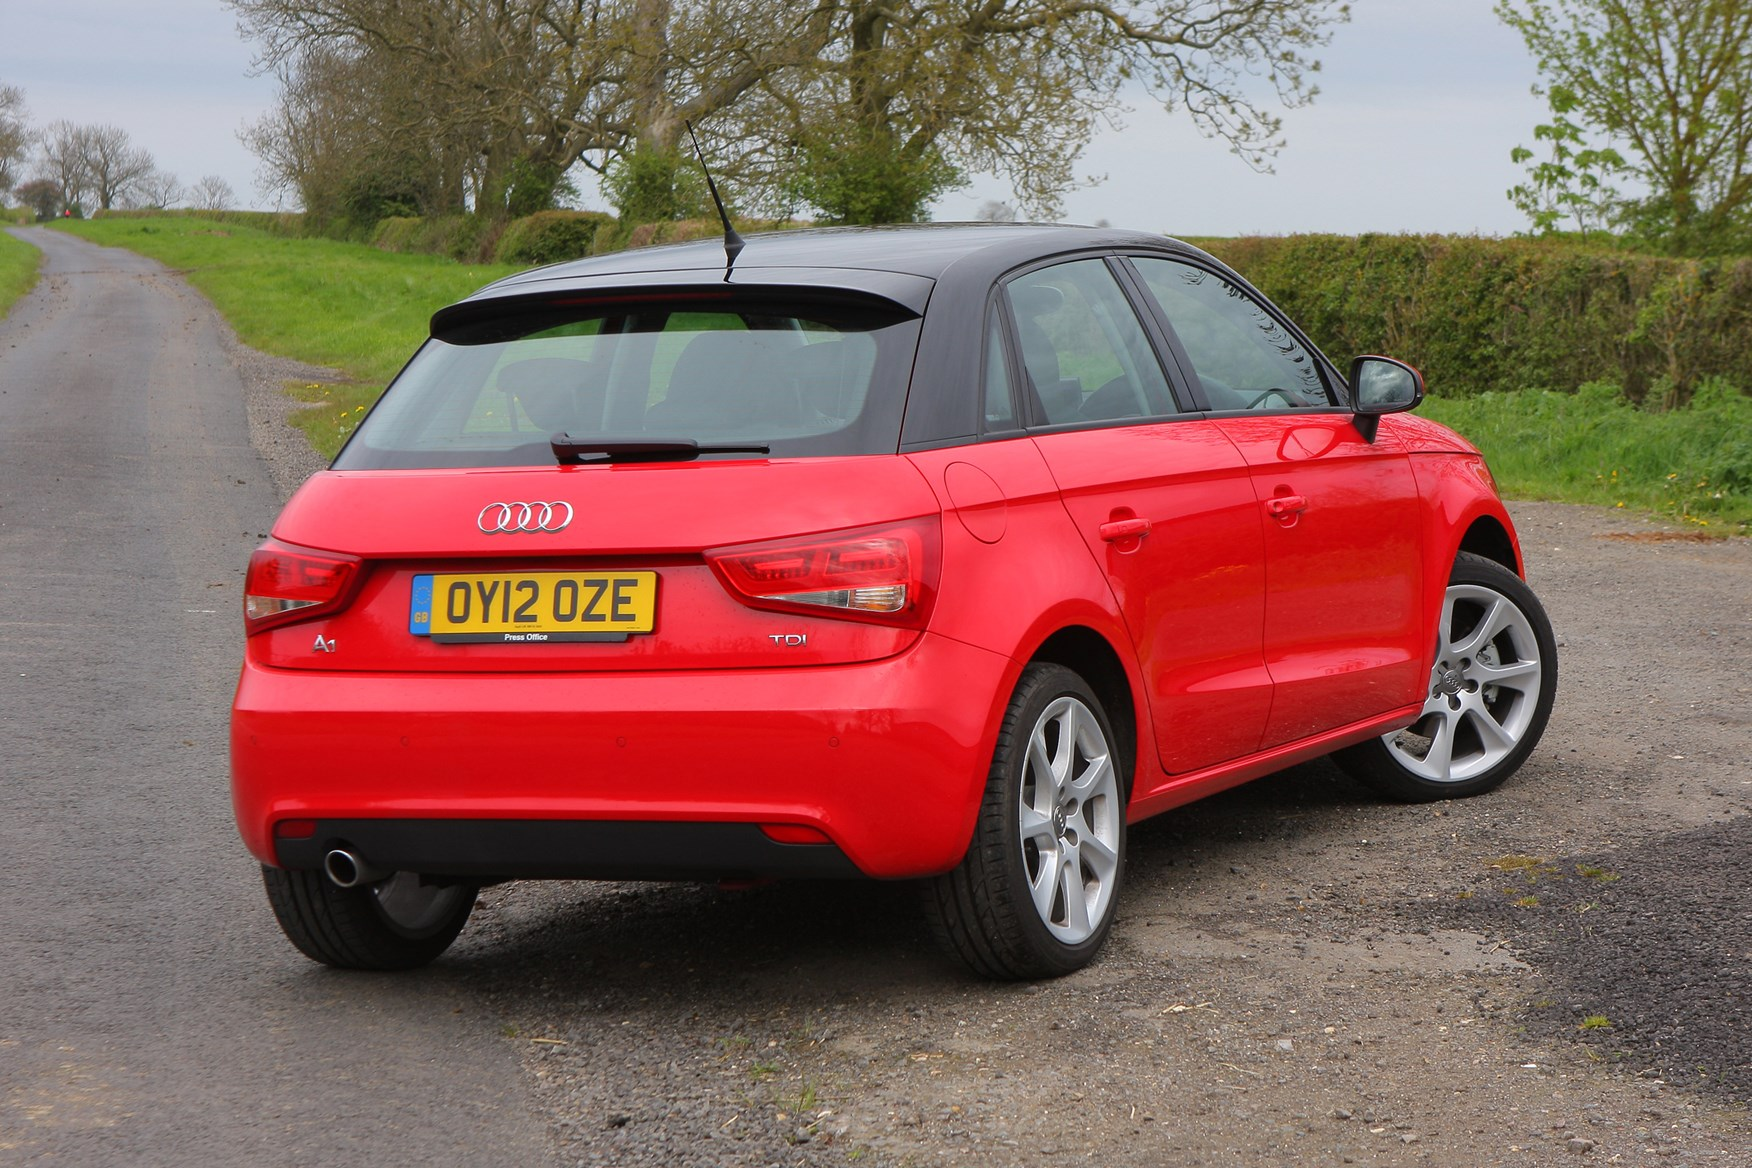 Used Audi A1 >> Audi A1 Sportback (2012 - ) Photos | Parkers